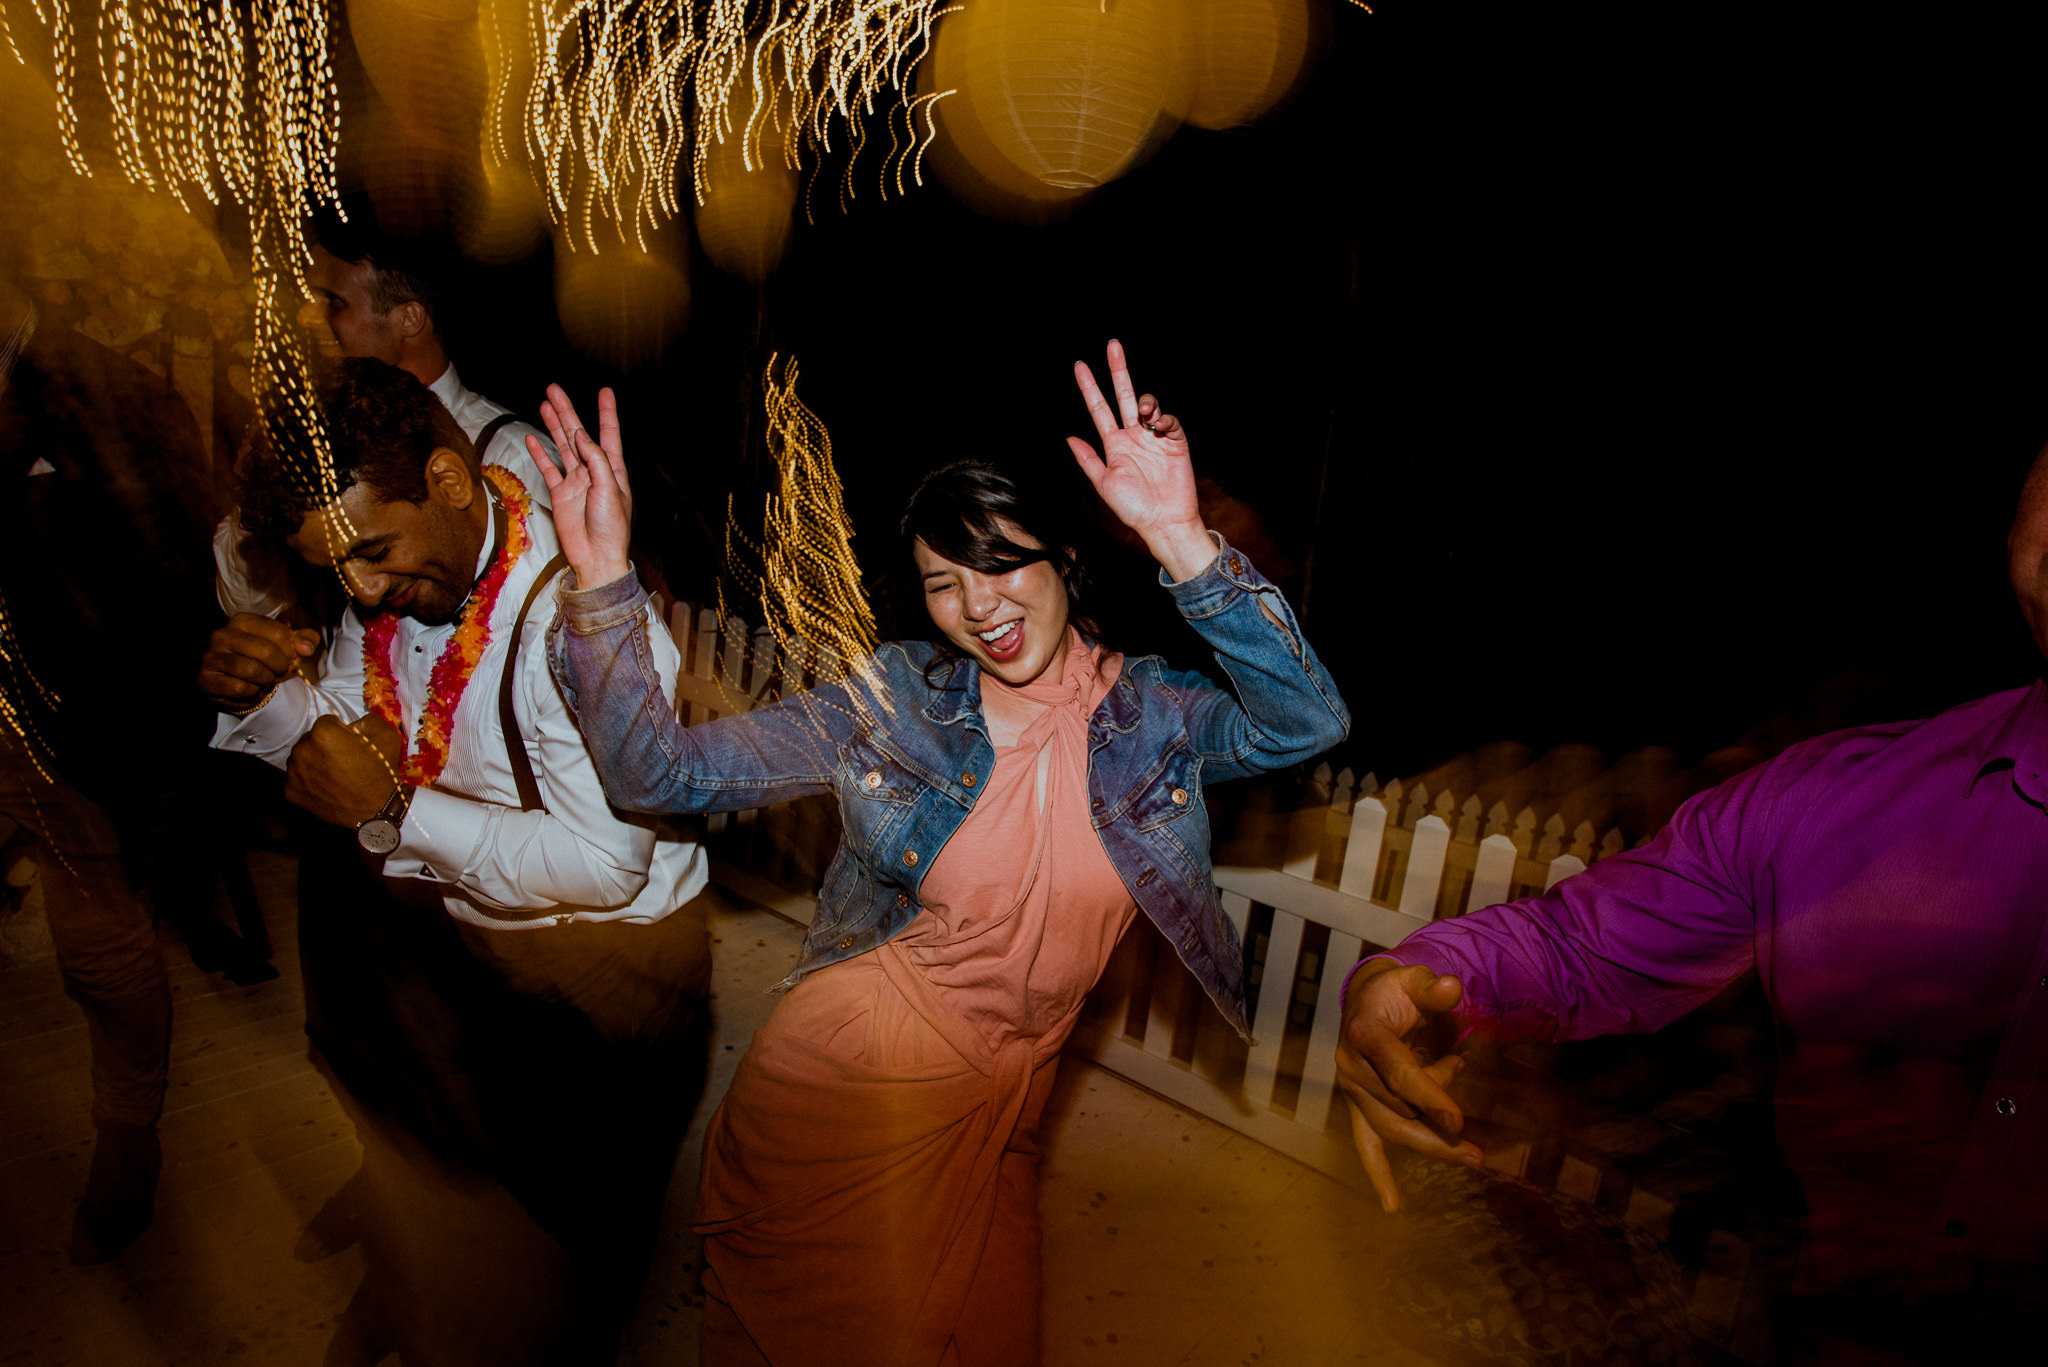 Party shot of people dancing together